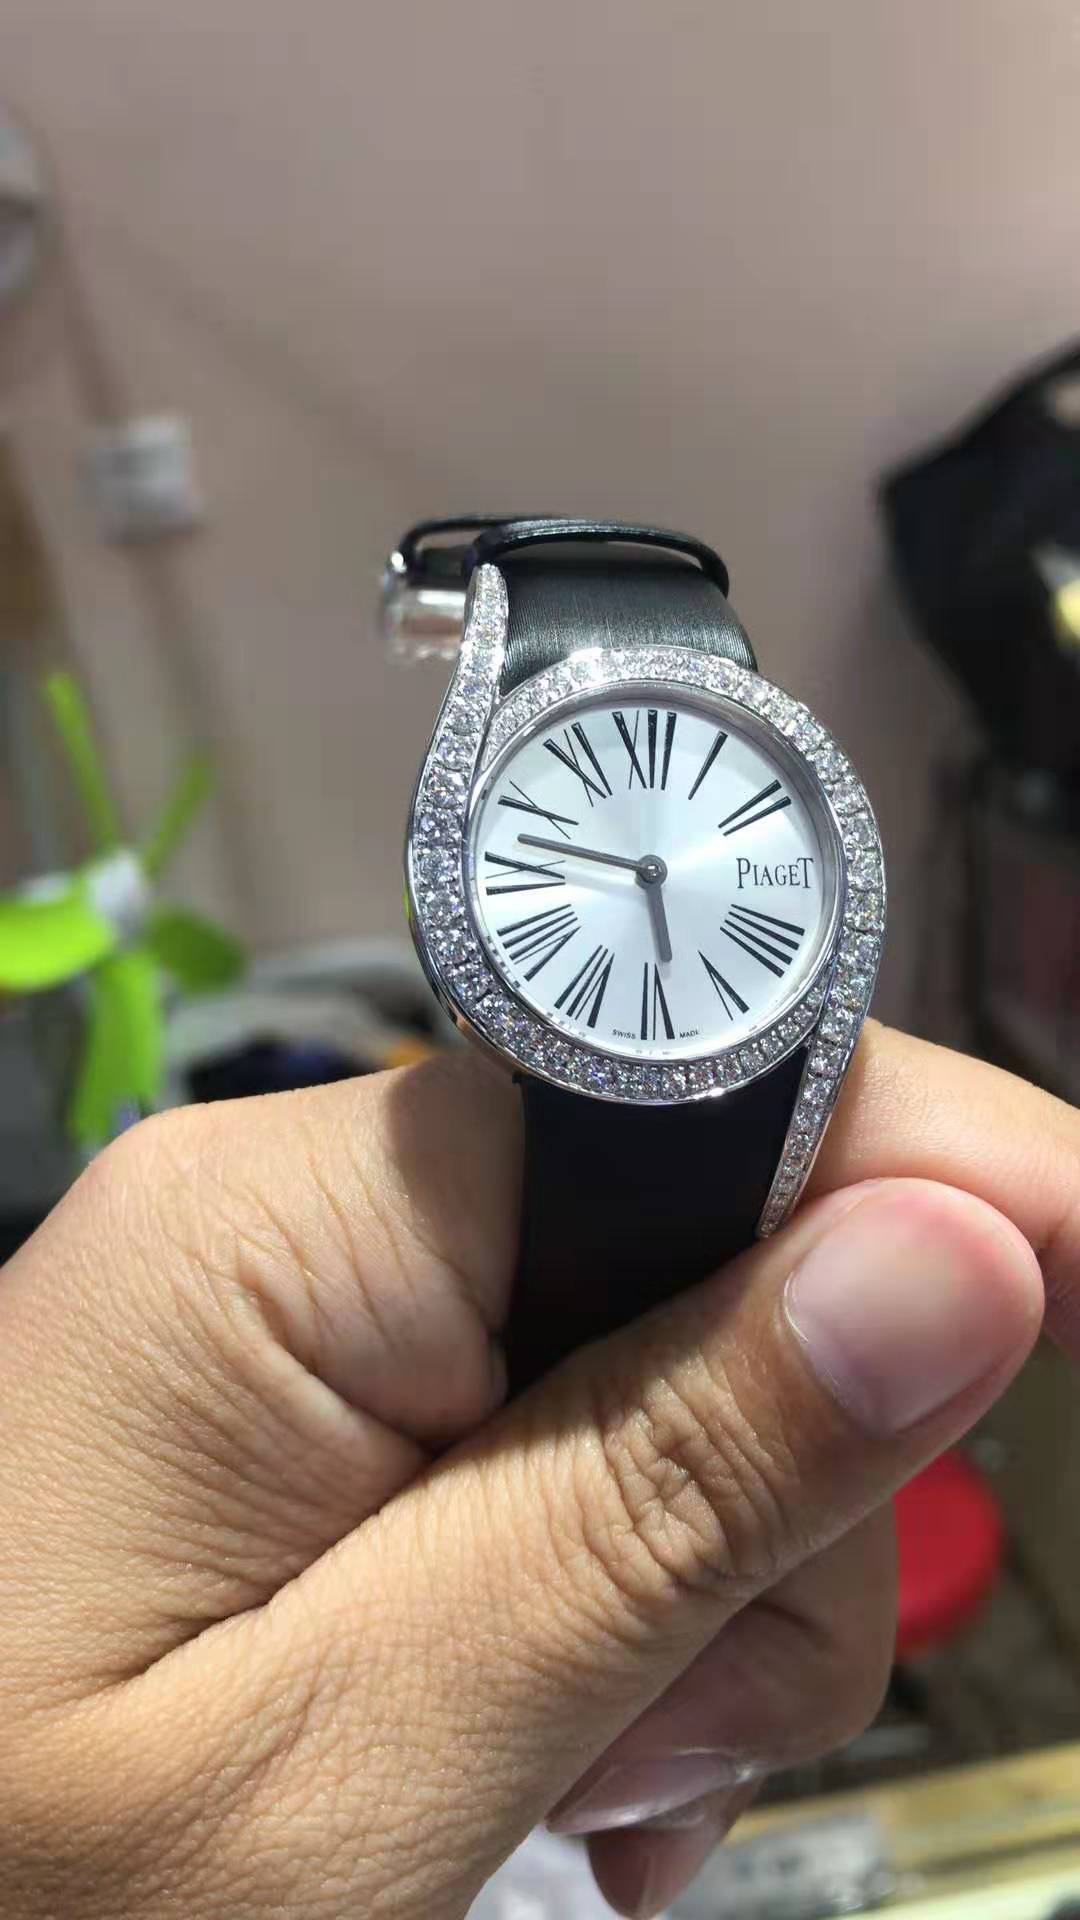 Piaget LIMELIGHT GALA WATCH 32 mm Case in 18K white gold set with 62 brilliant-cut diamonds